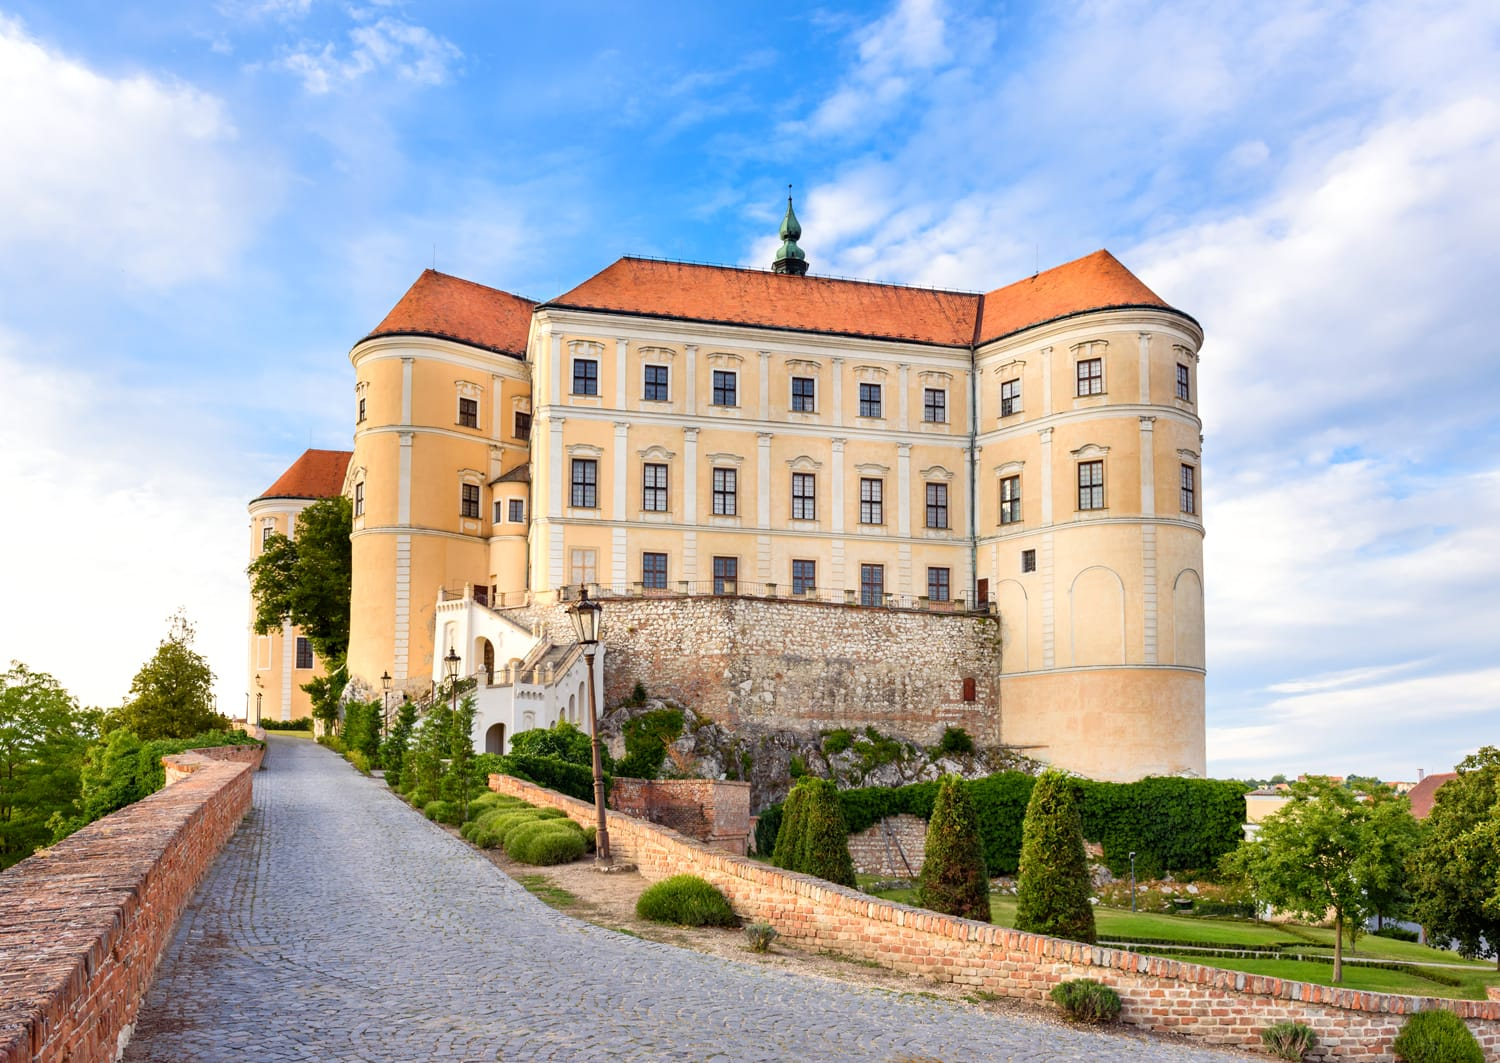 Mikulov castle or Mikulov Chateau on top of rock. View from garden of castle with beautiful staircase and bright blue sky with clouds in background. Mikulov, Moravia, Czech Republic.